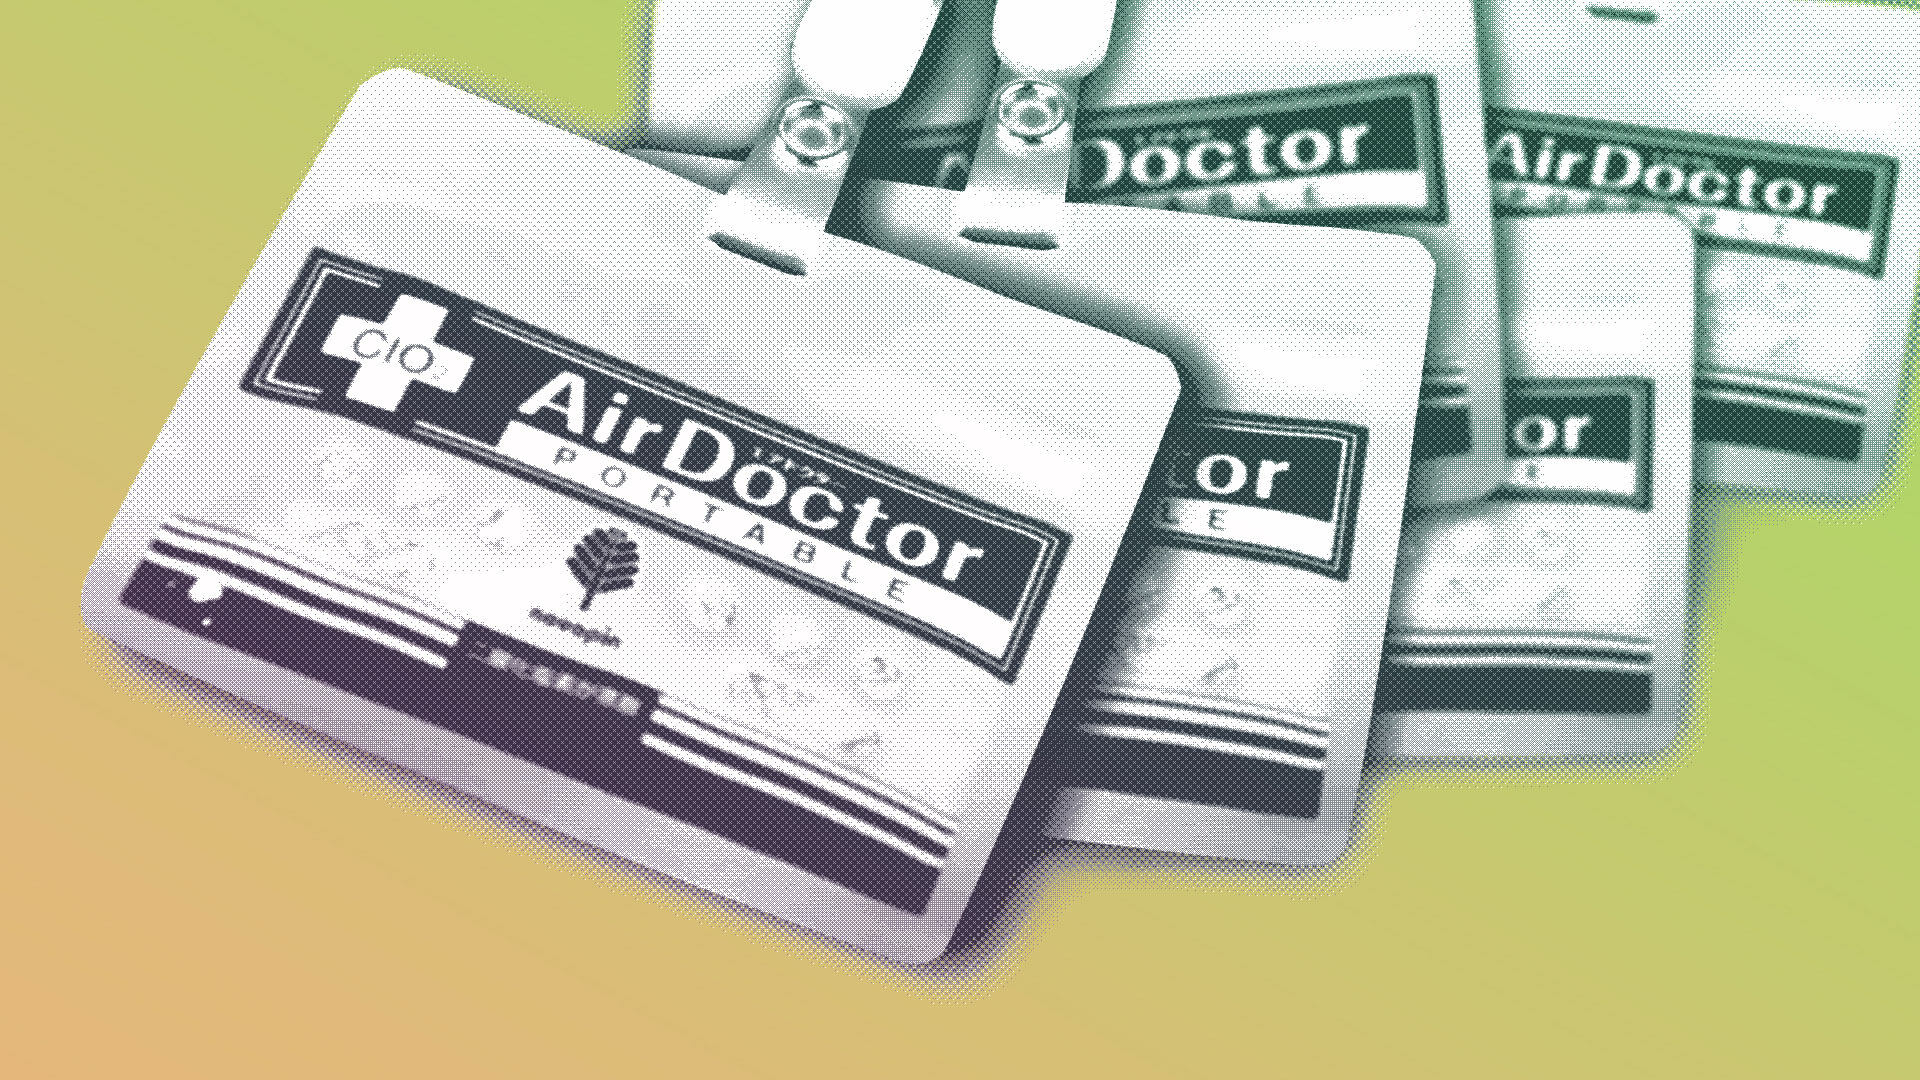 Lies And Rattling Lies About Air Doctor 5000